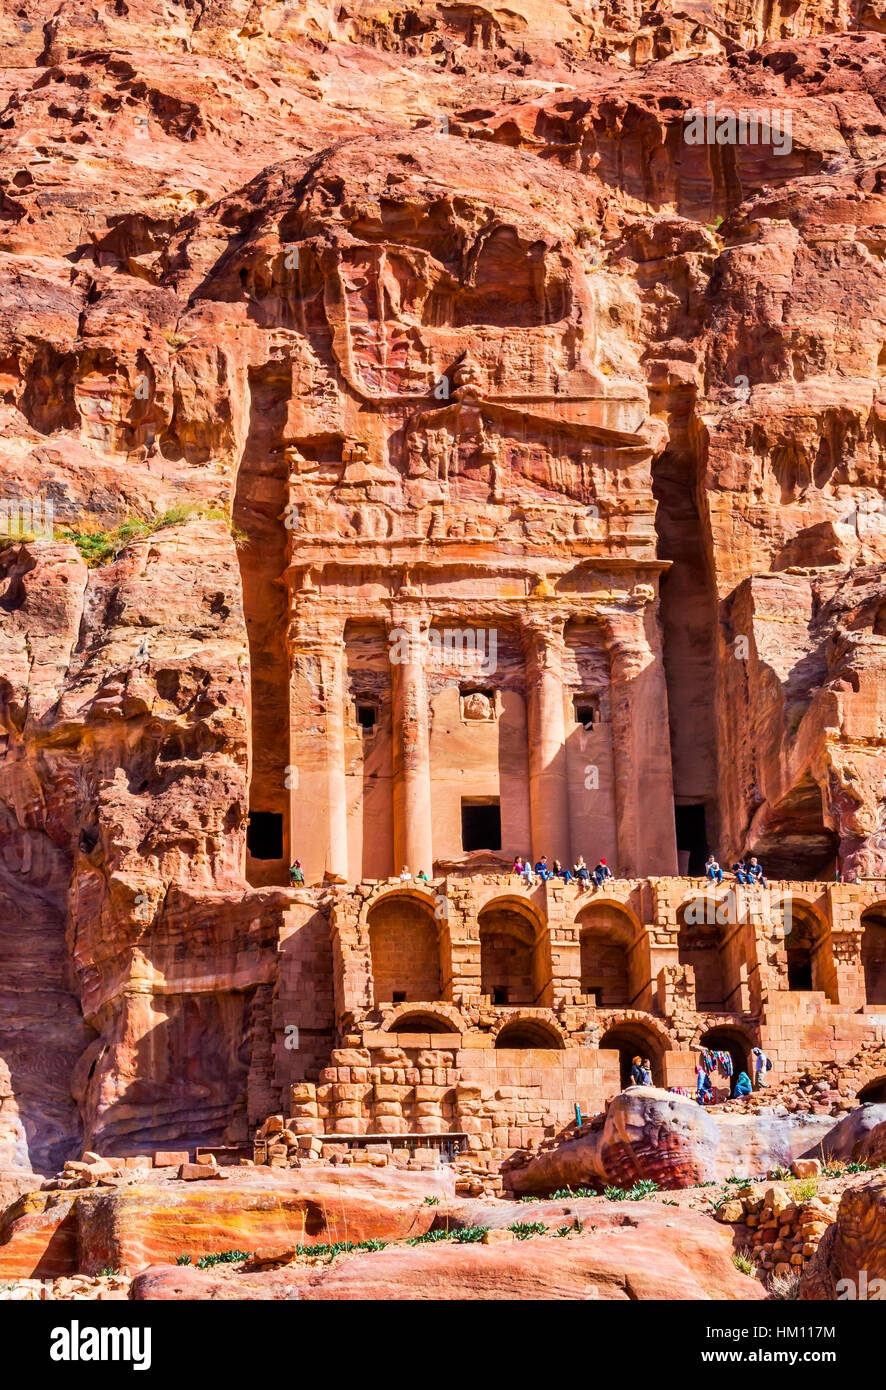 Rock Tomb Arch Tourists Petra Jordan.  Built by the Nabataens in 200 BC to 400 AD. - Stock Image